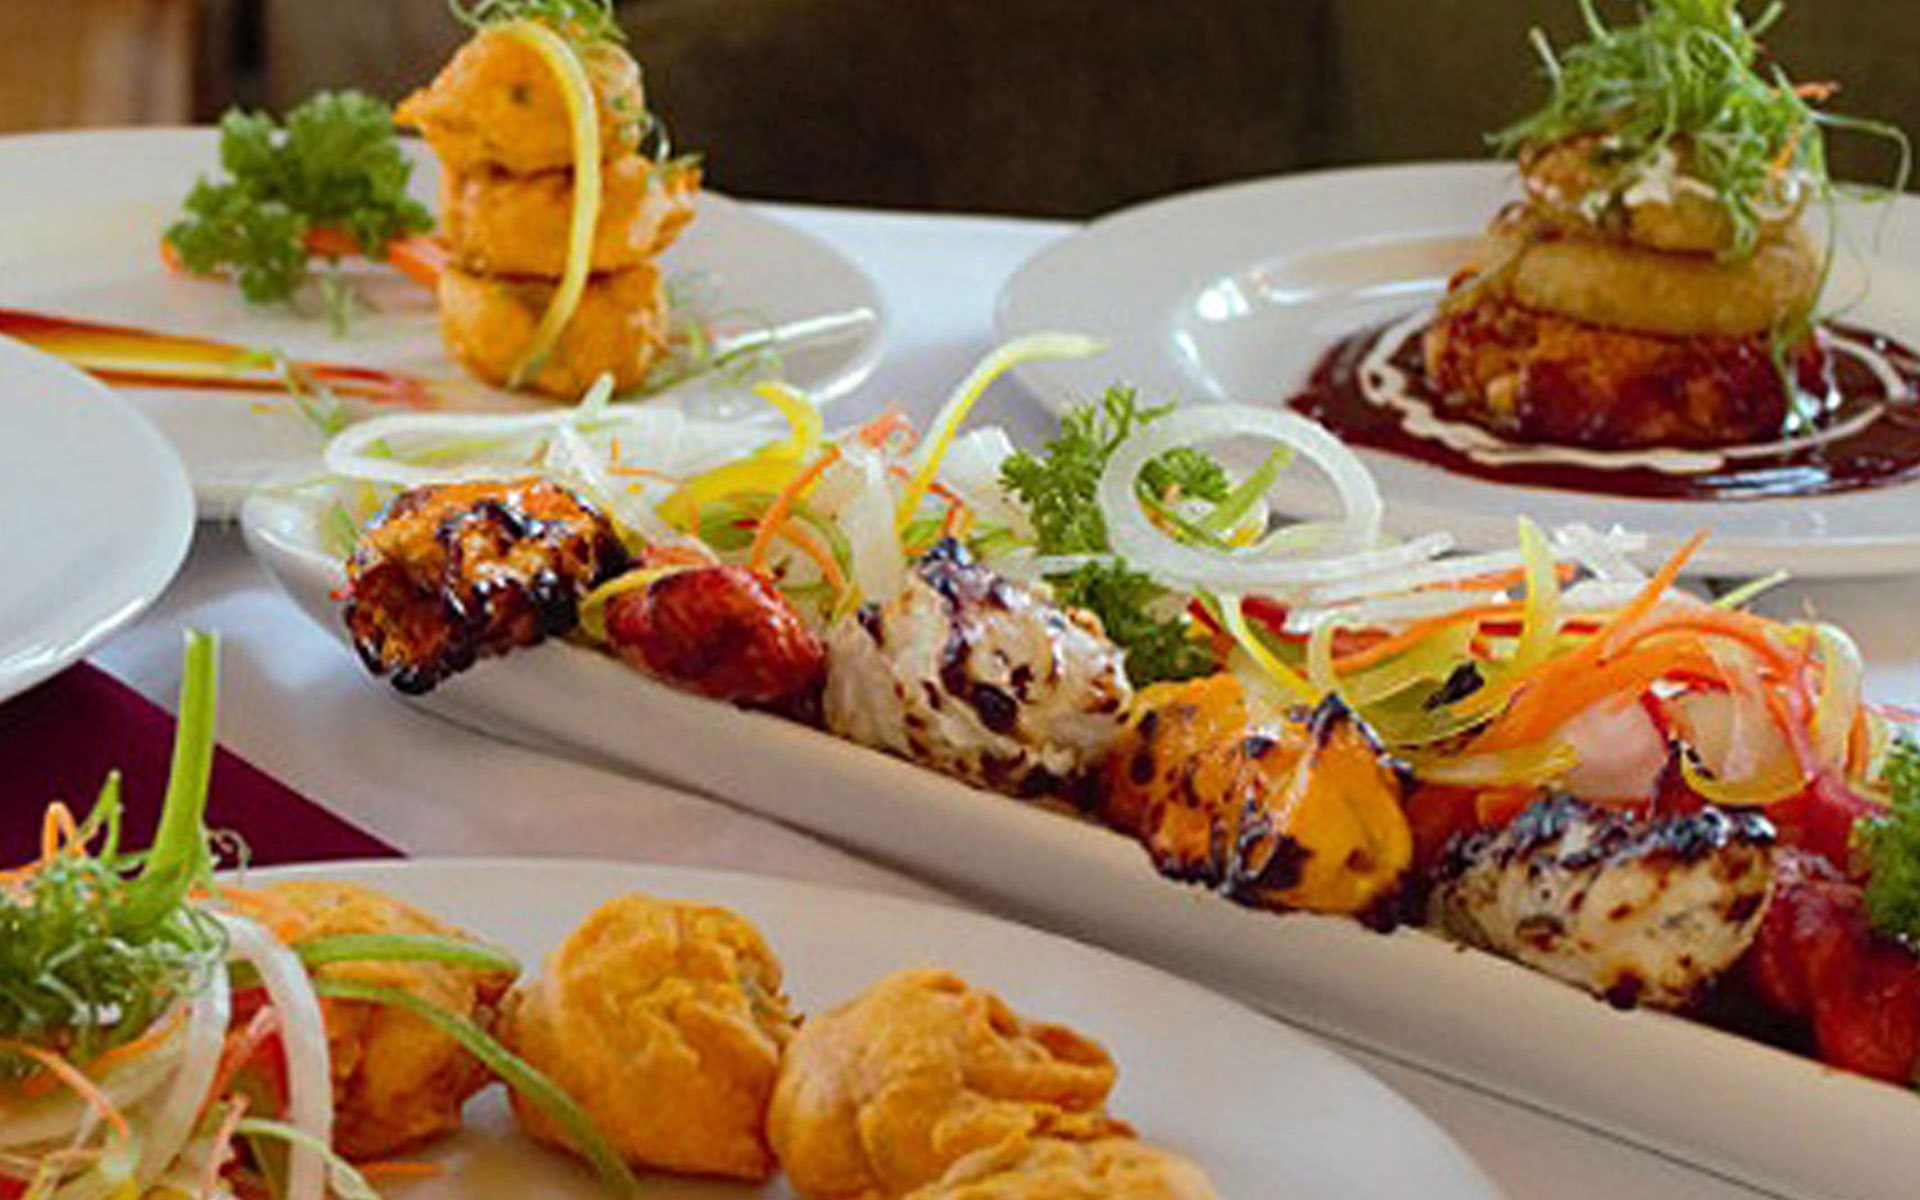 Plates of tikkas and samosas garnished with onion rings, curly green onion strings and parsley are served alongside bhuna, a dish of chicken, onions, tomatoes and bell peppers at Tandoor & Grill at the Stanford Fernie Resort.